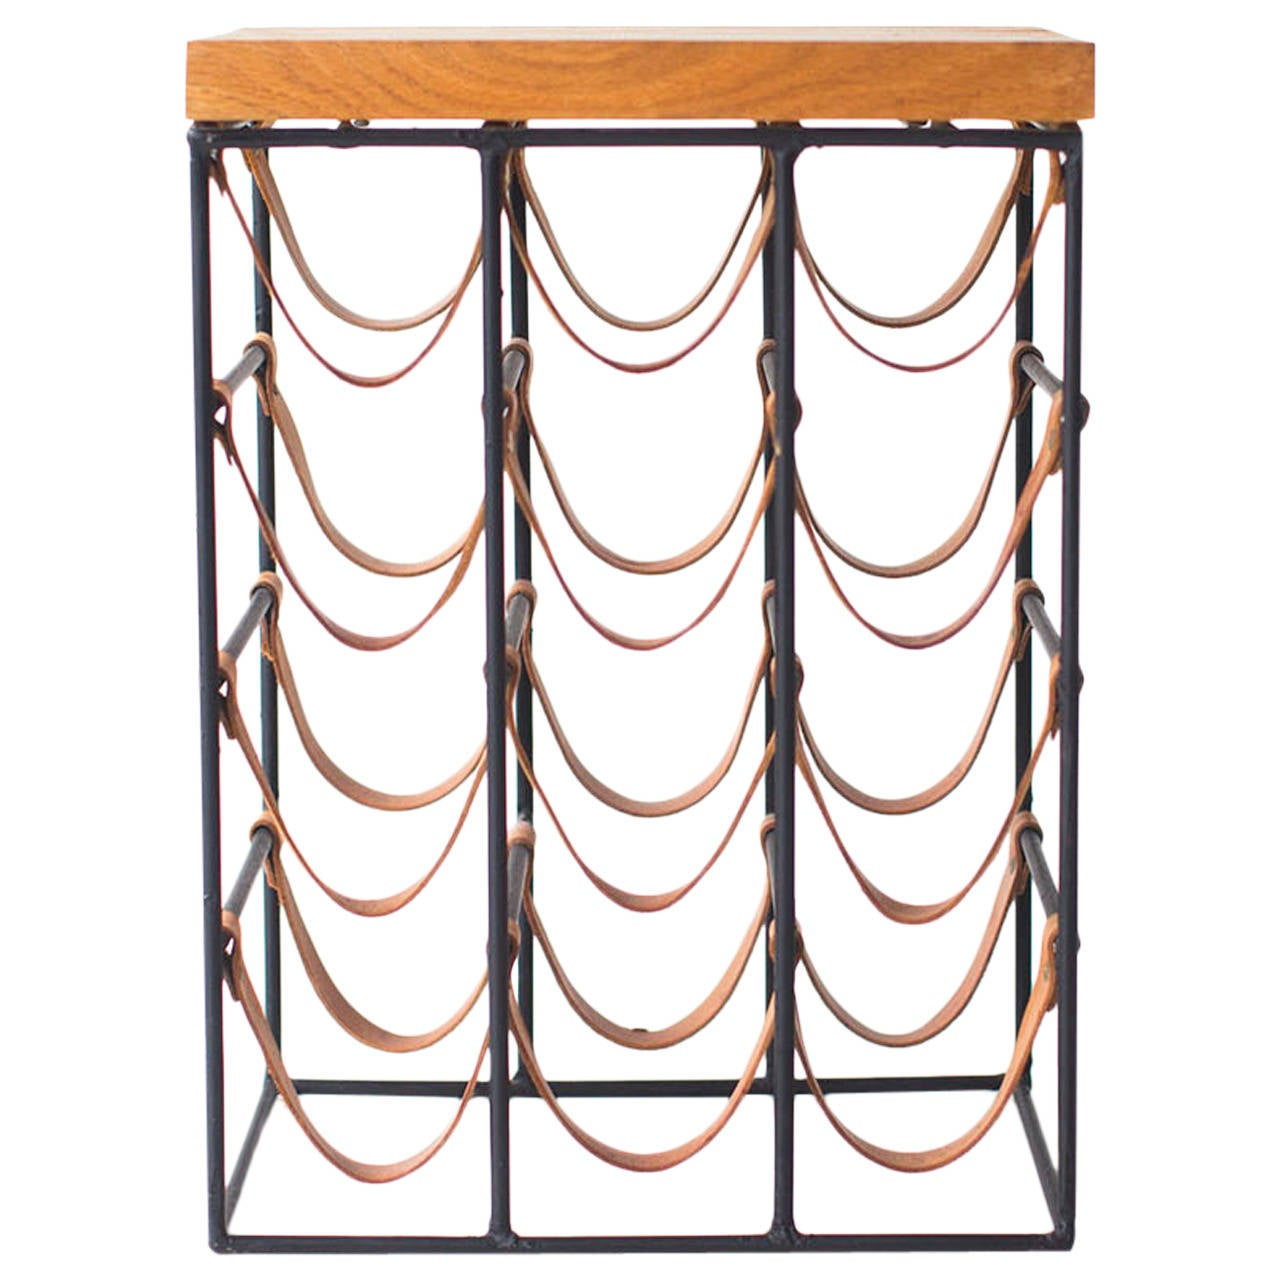 Arthur Umanoff Wrought Iron and Leather Wine Rack For Sale at 1stdibs